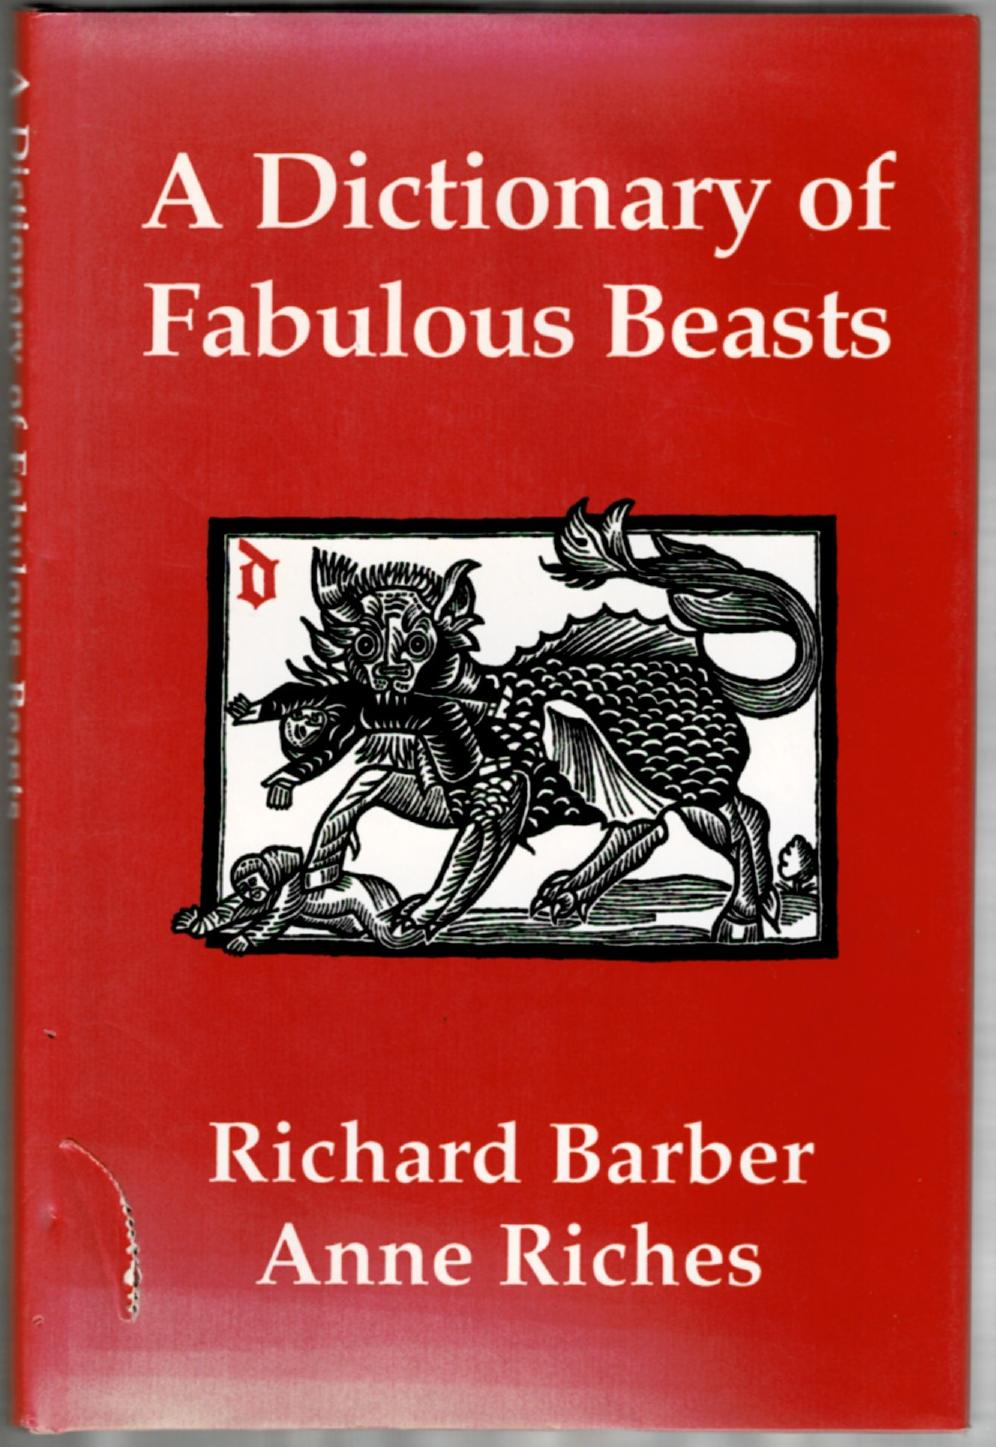 Image for A Dictionary of Fabulous Beasts